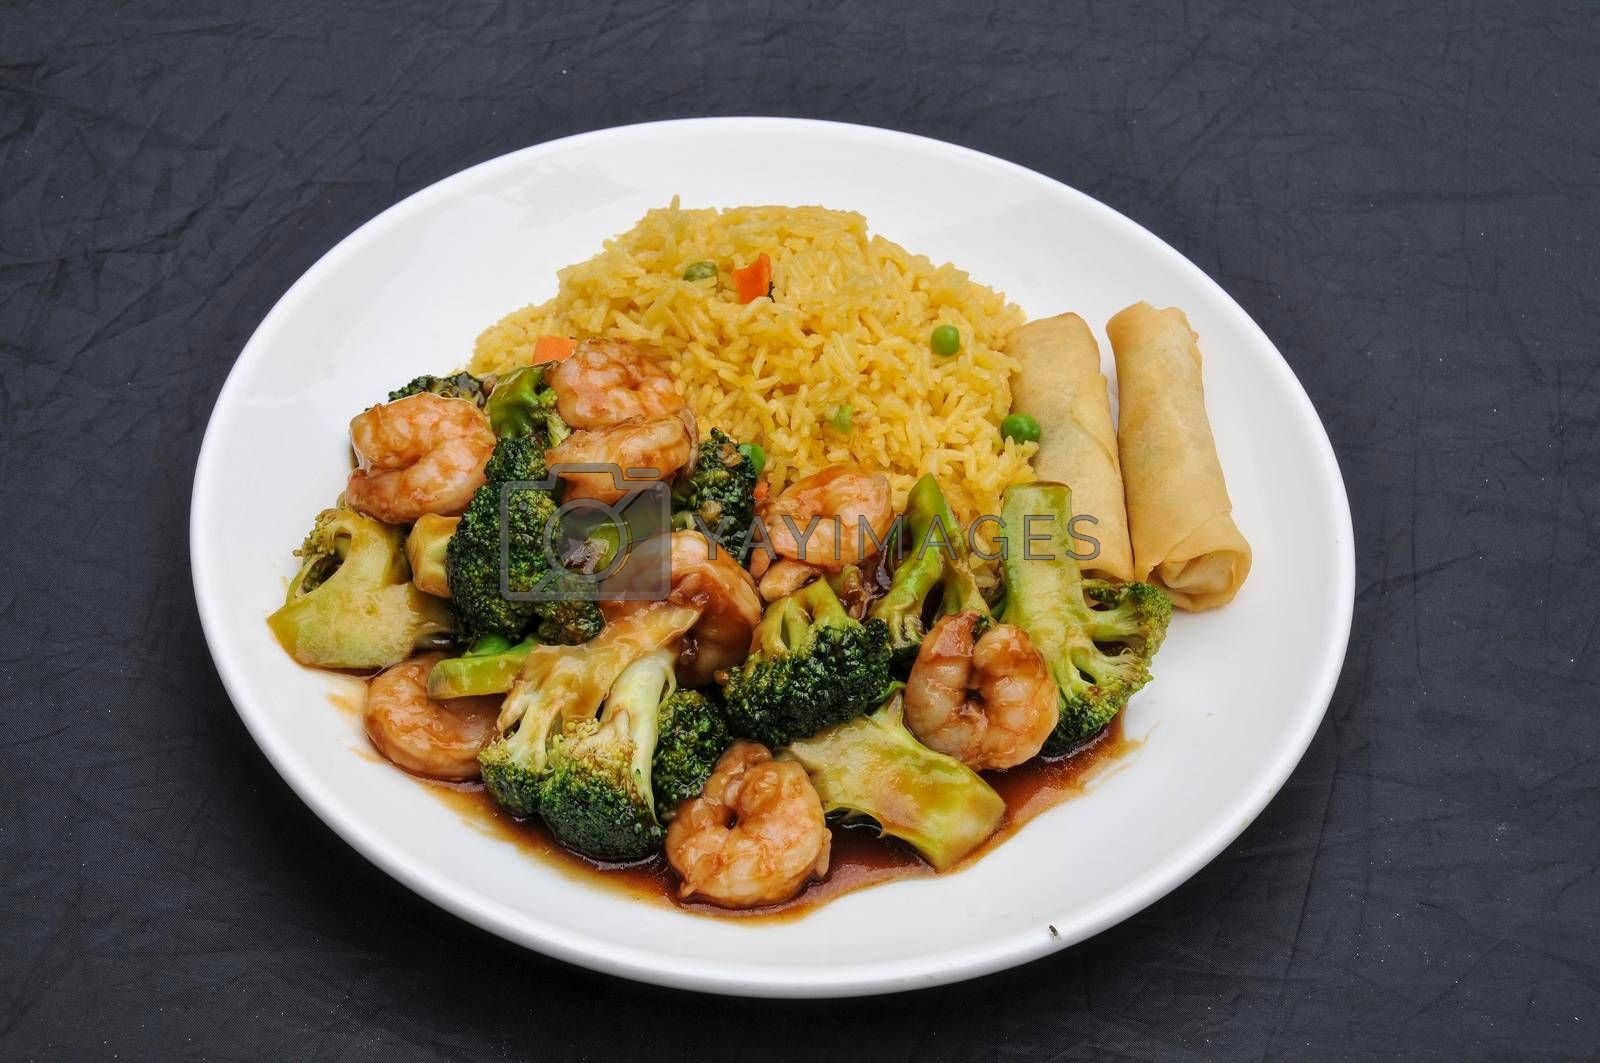 Authentic and traditional Chinese dish known as shrimp with broccoli